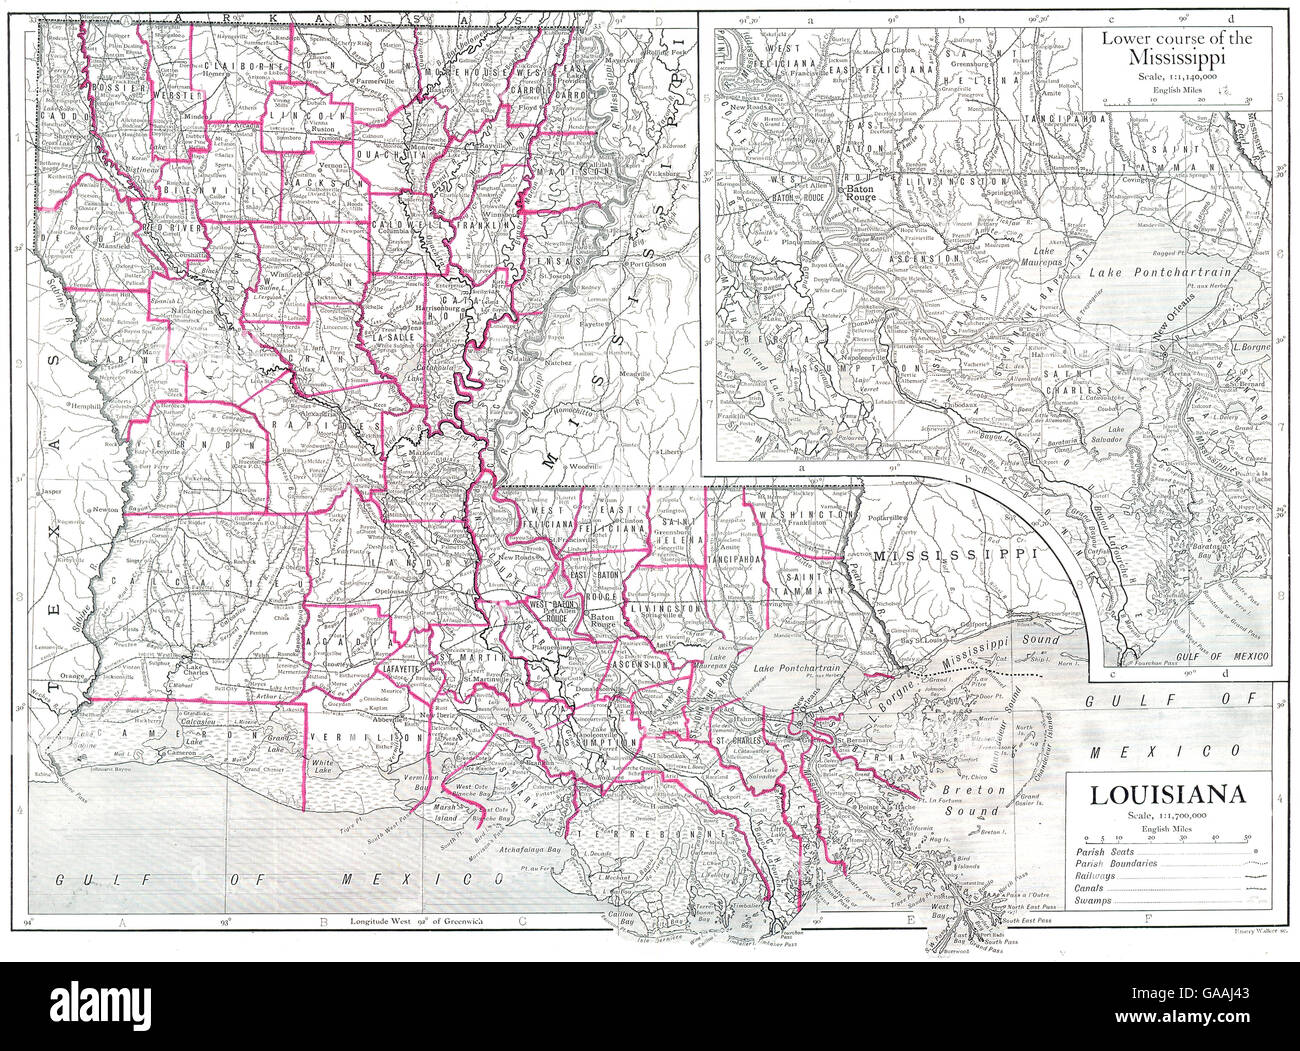 Louisiana State Map Parishes Inset Map Of Lower Course Of The